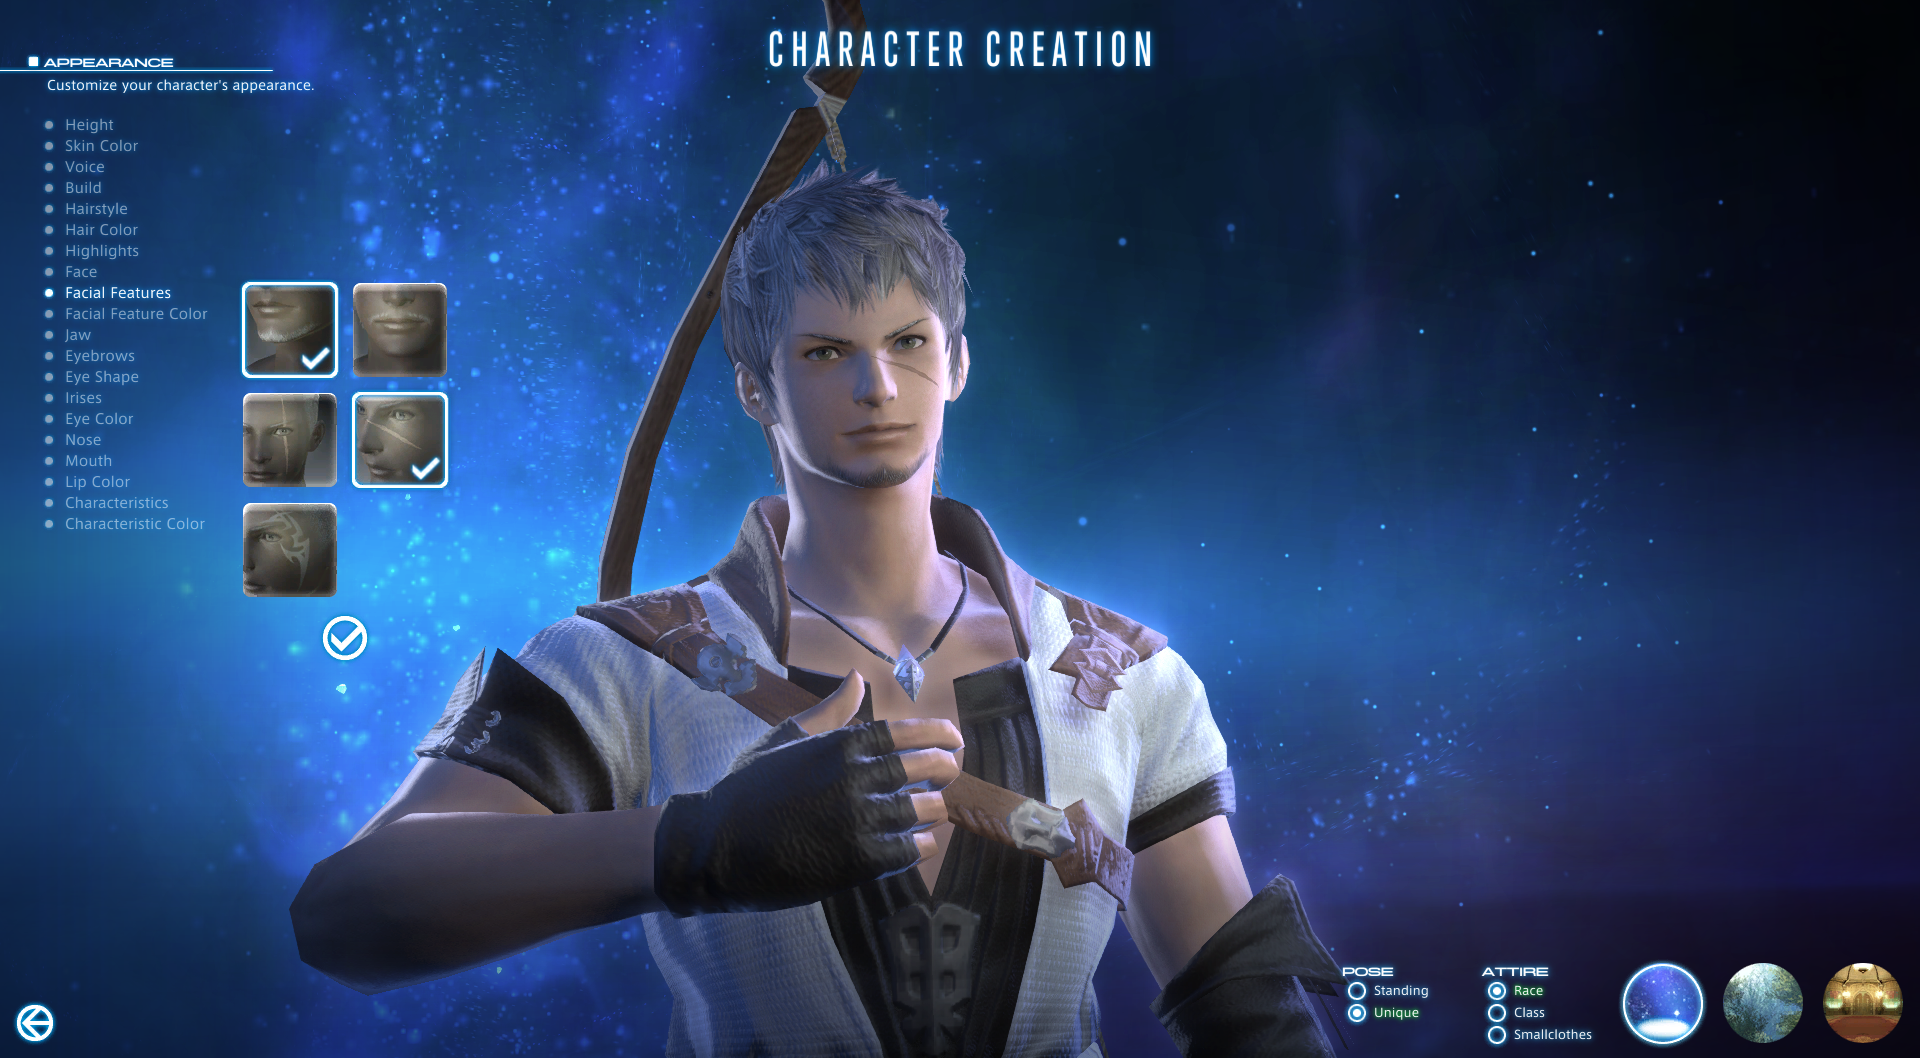 New Final Fantasy XIV: A Realm Reborn Video Showcases the Character